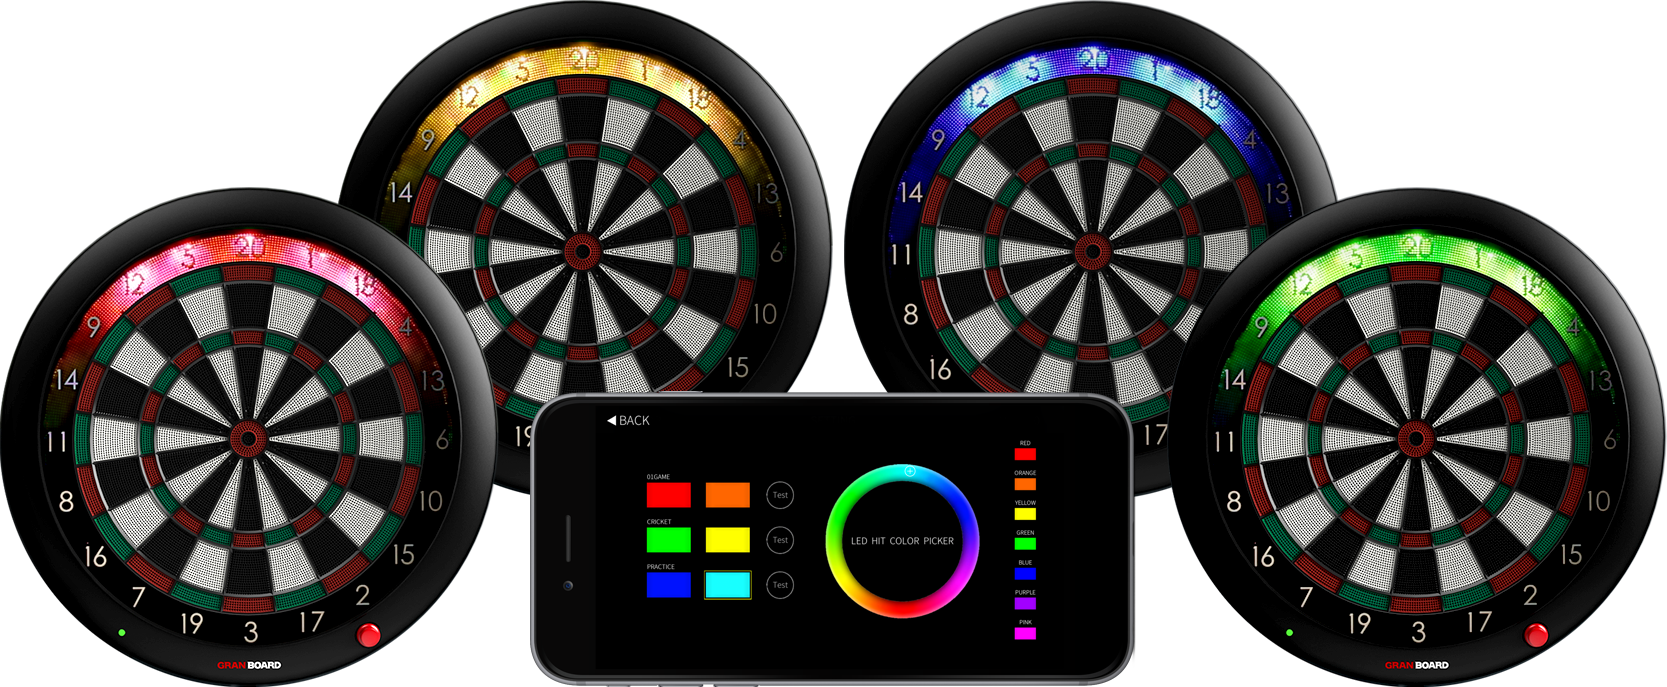 granboard 3s is a premium soft tip electronic dartboard with online play